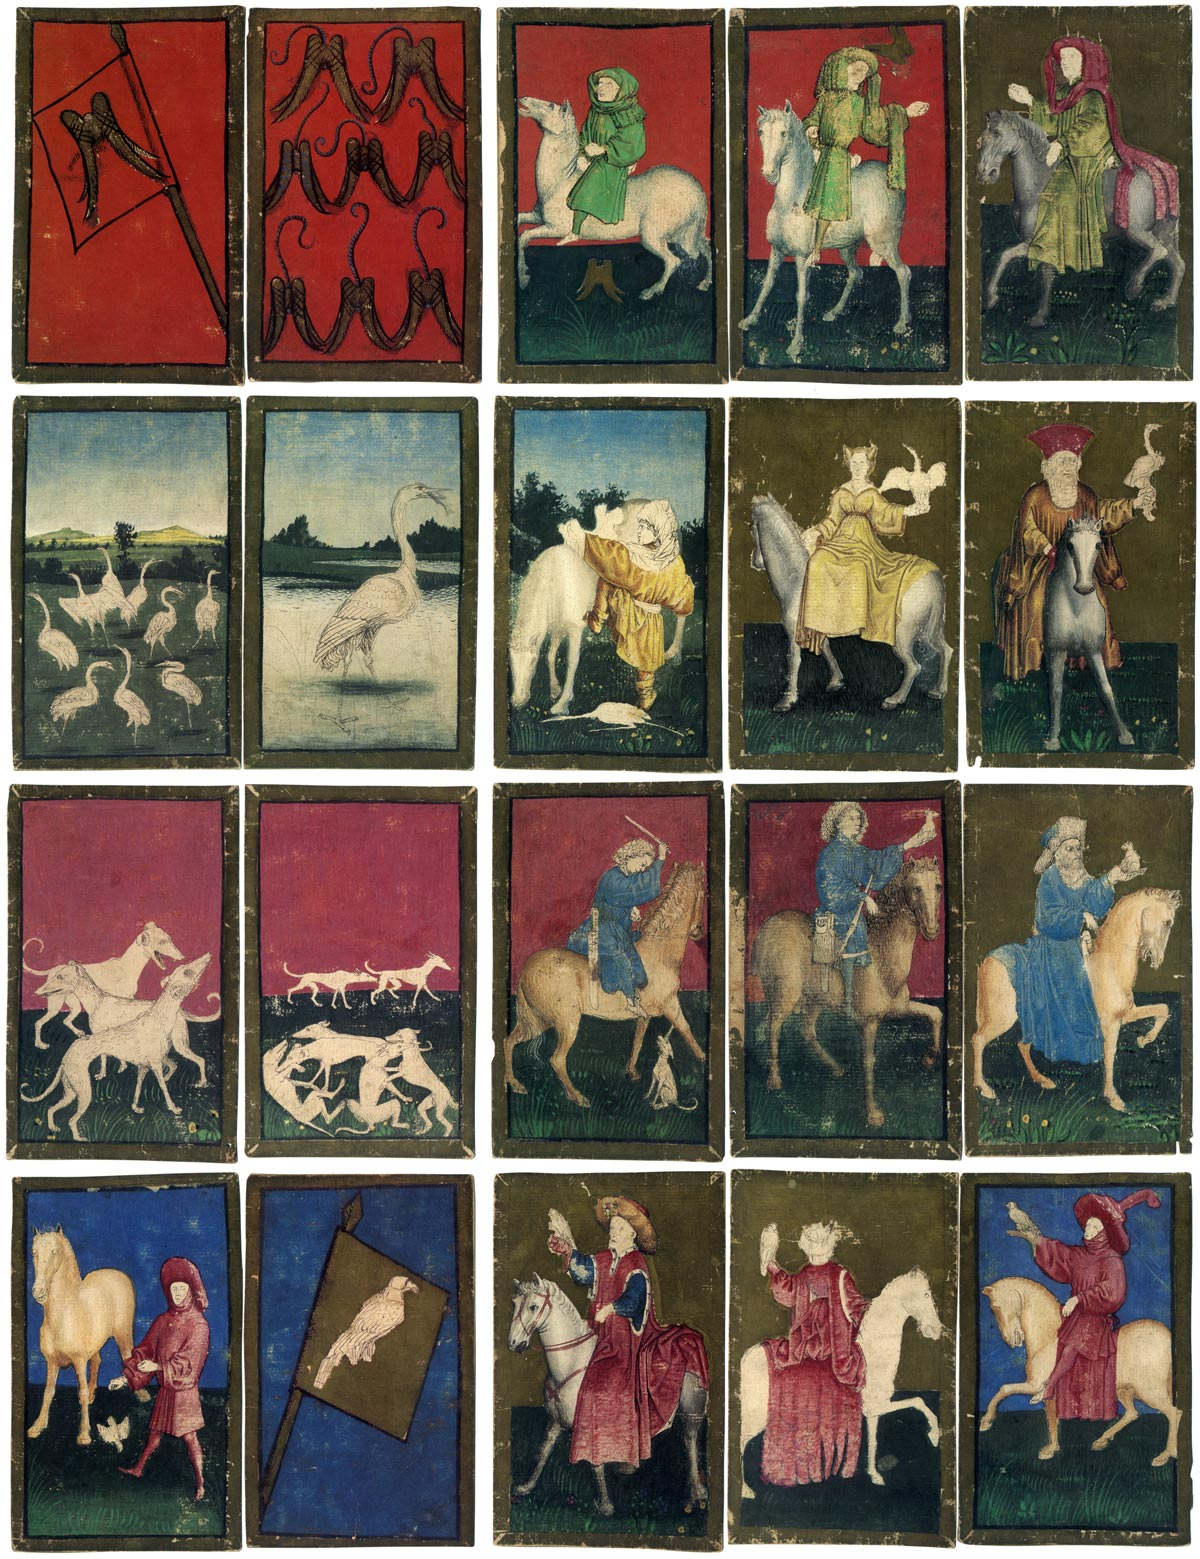 The Ambras Court Hunting pack, c.1445